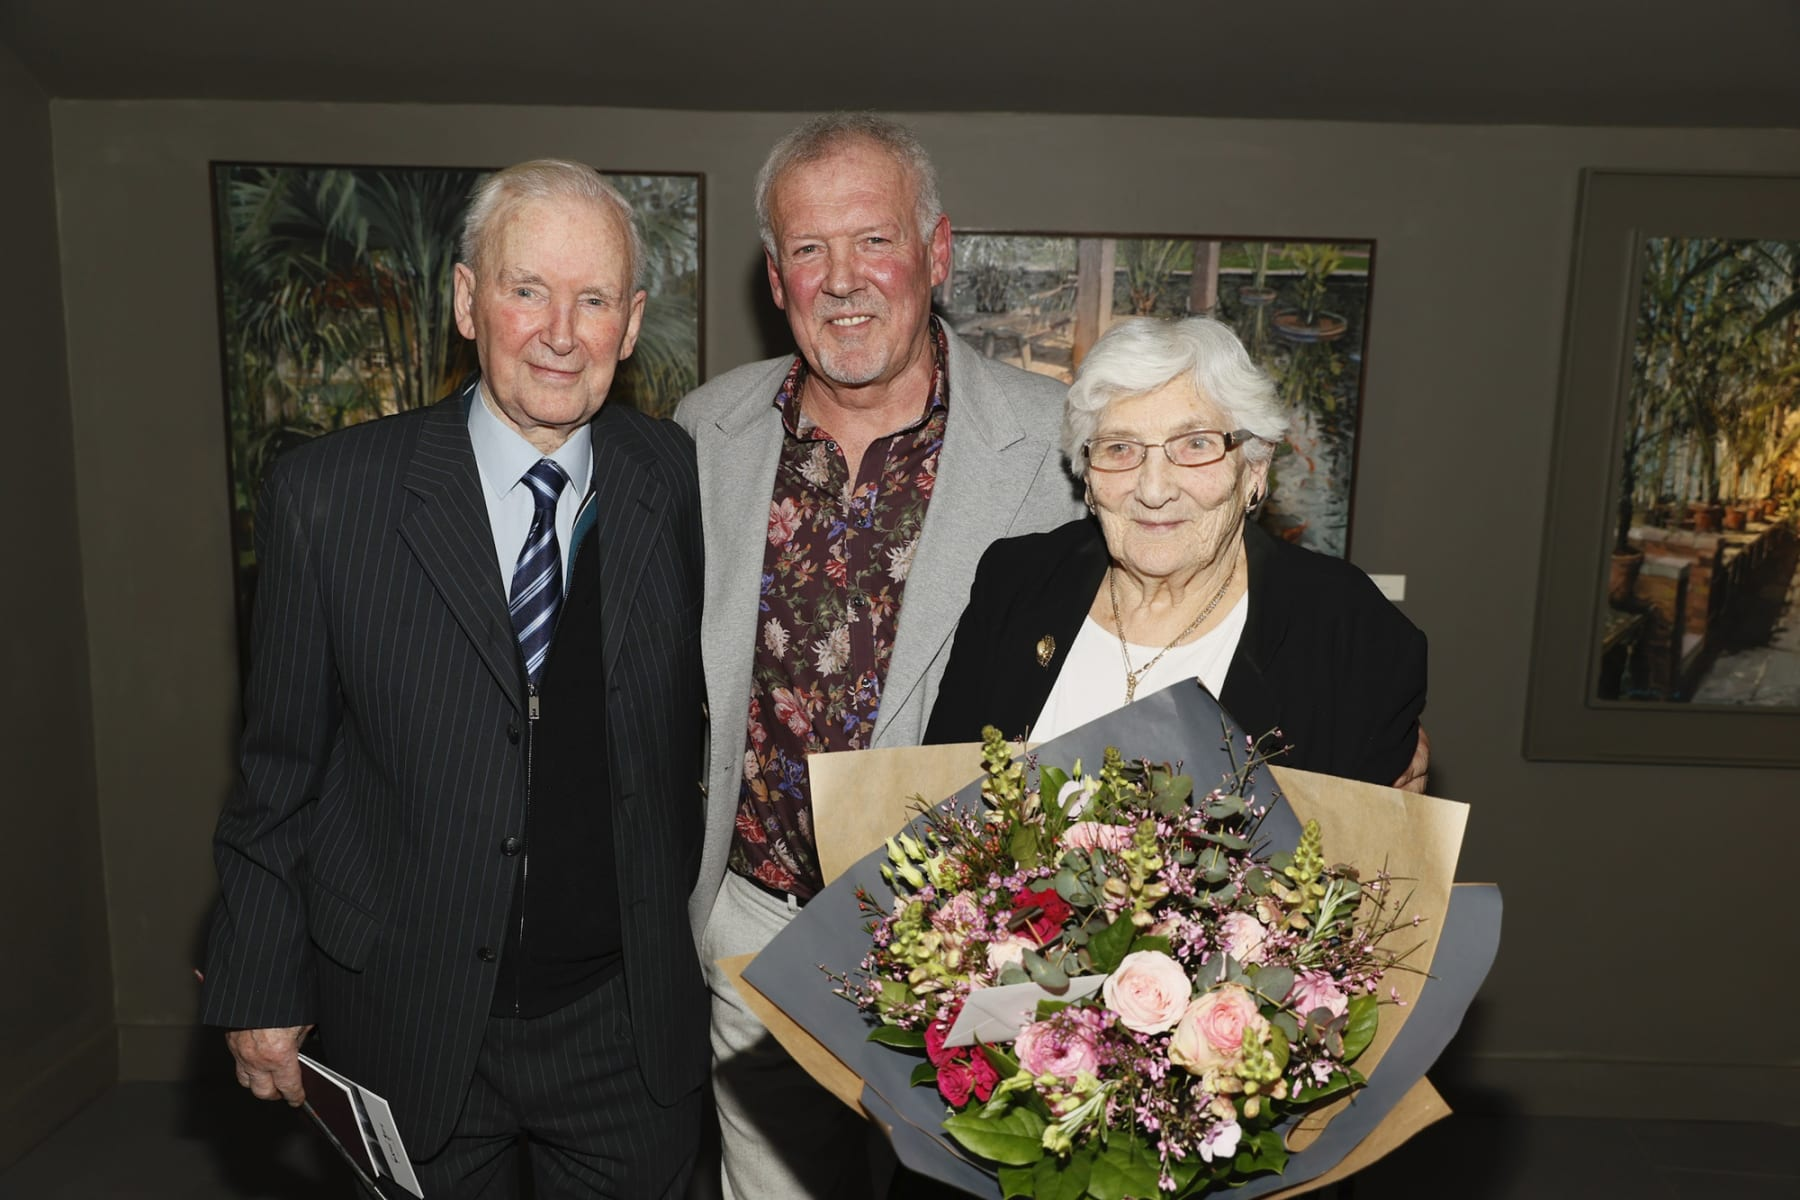 Artist Gerard Byrne with his parents Brendan and Kathleen Byrne at the opening of the 'Botanical Fusion. Singapore to Dublin' Exhibition